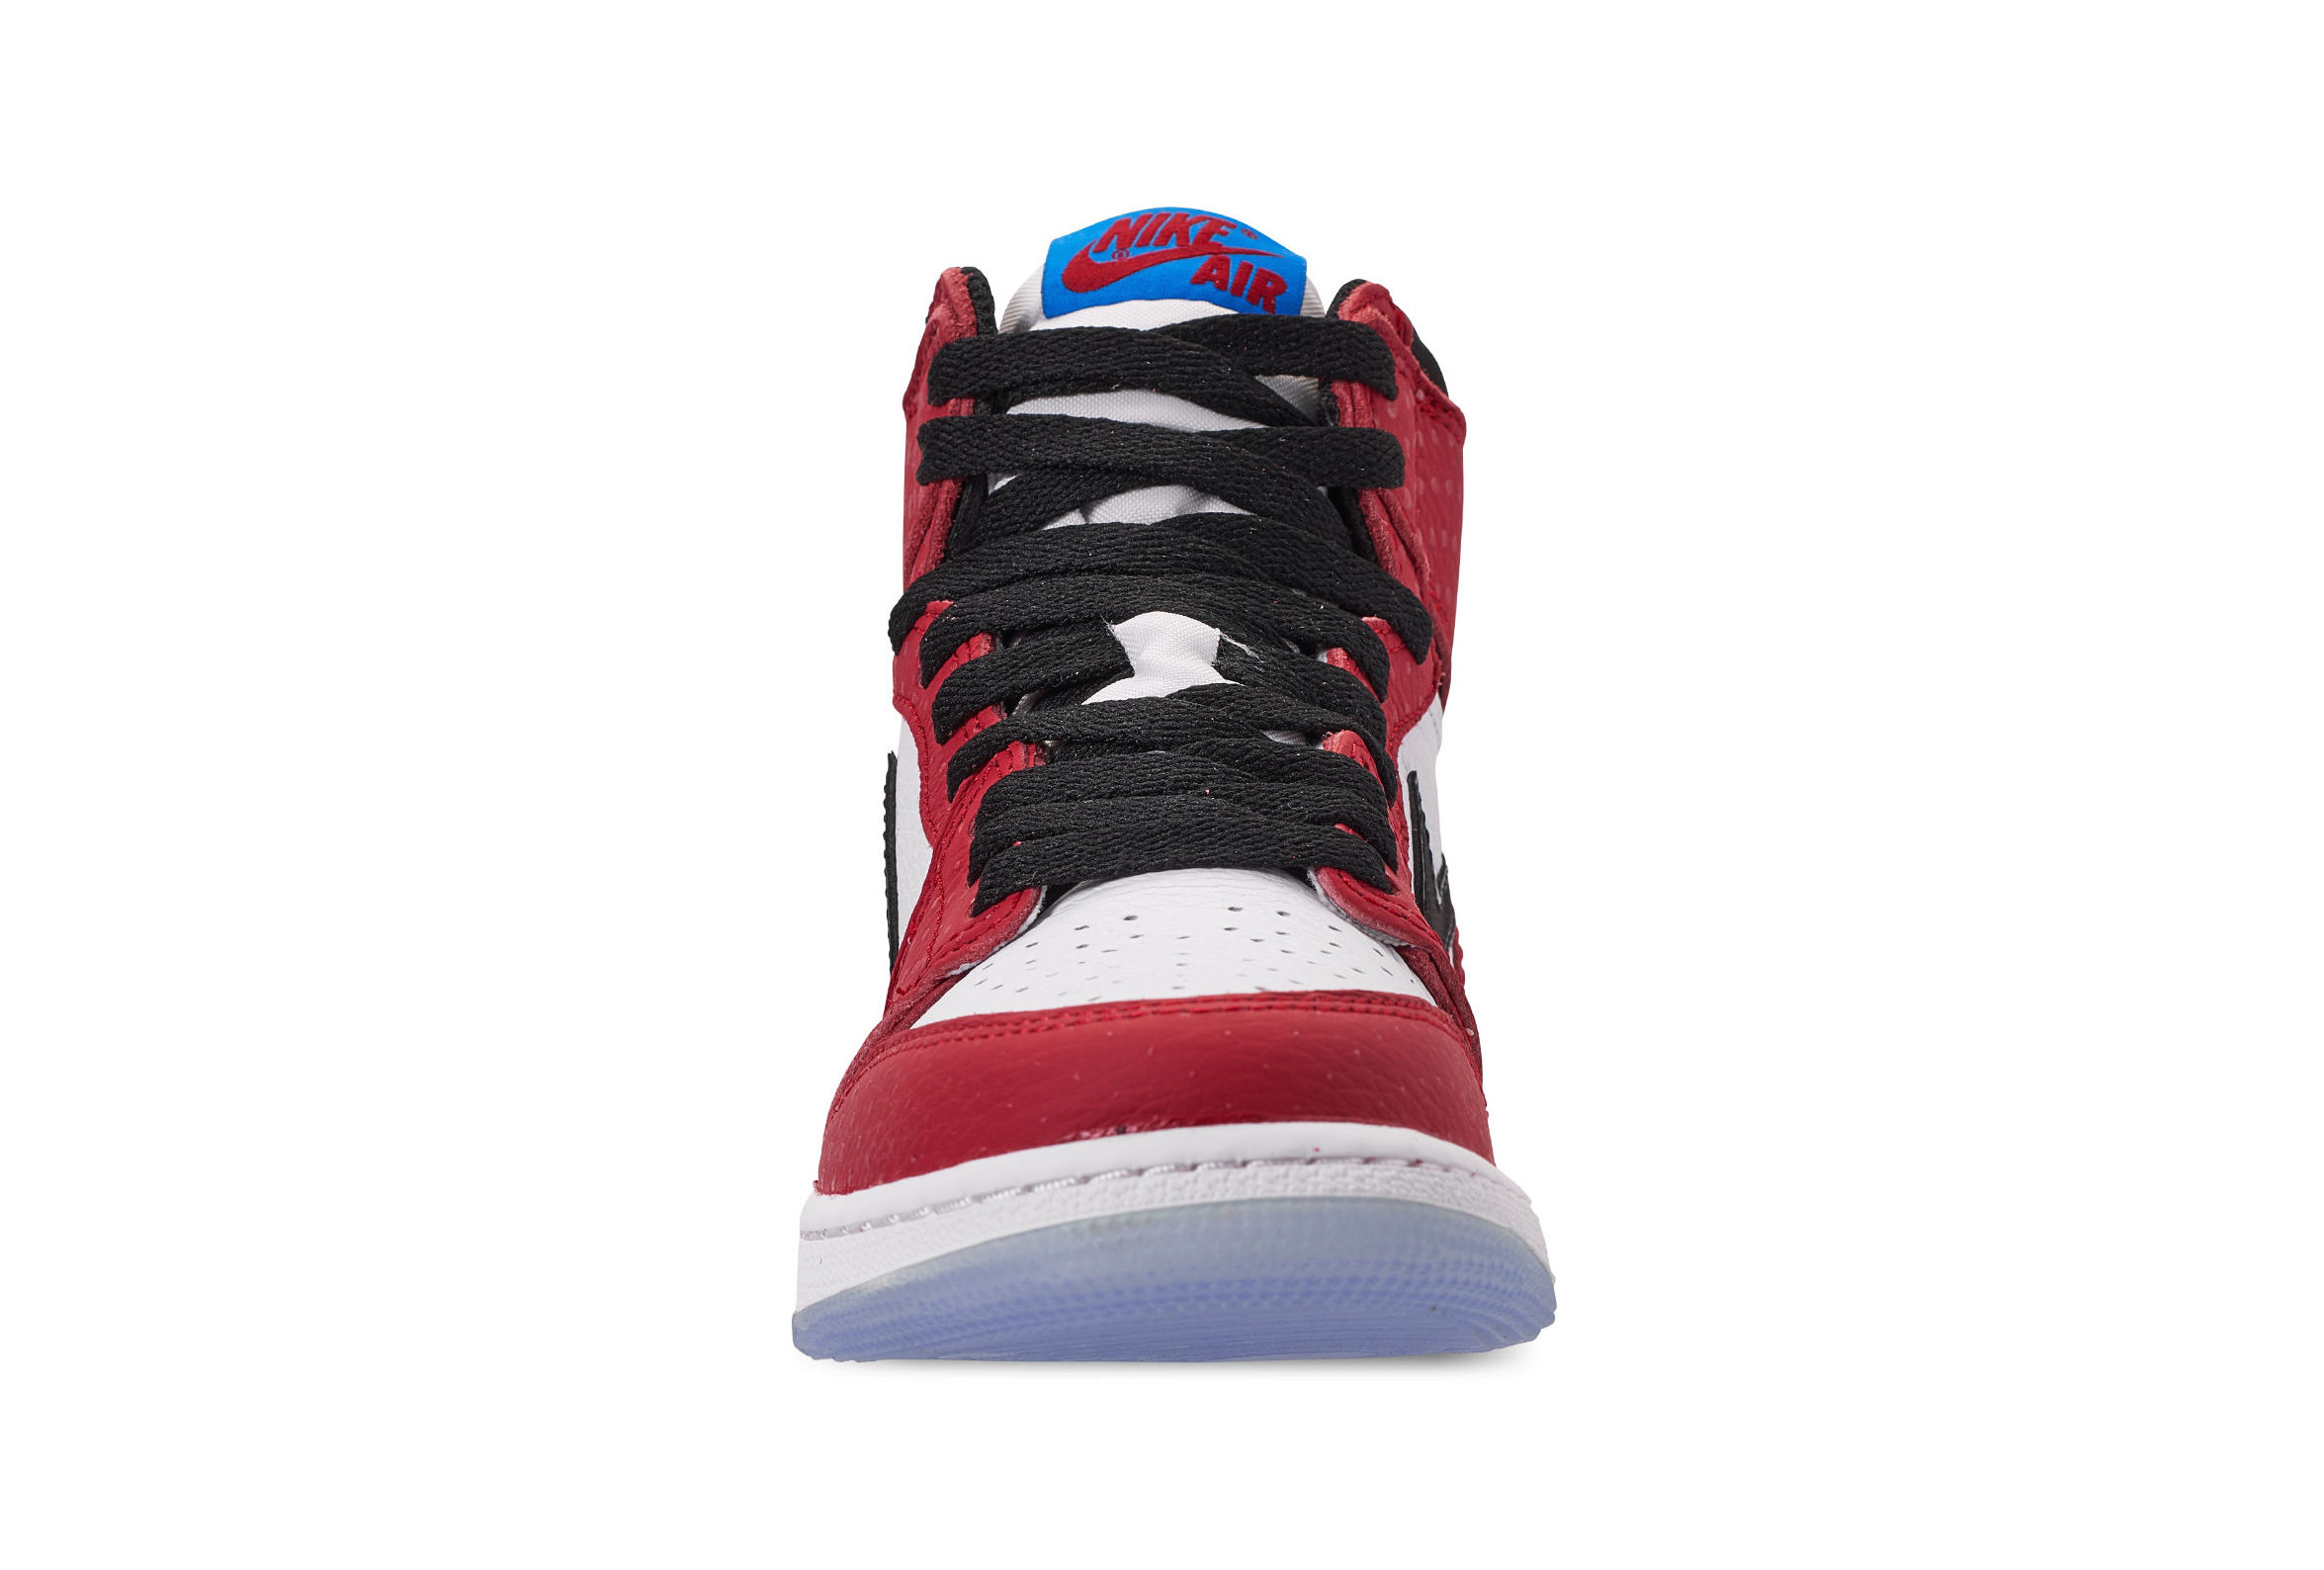 998575ac25cd1d You can pick up the Air Jordan 1 Retro High OG Origin Story (Into the  Spider-Verse) for  160 in adult and grade school sizes at select Jordan  Brand ...